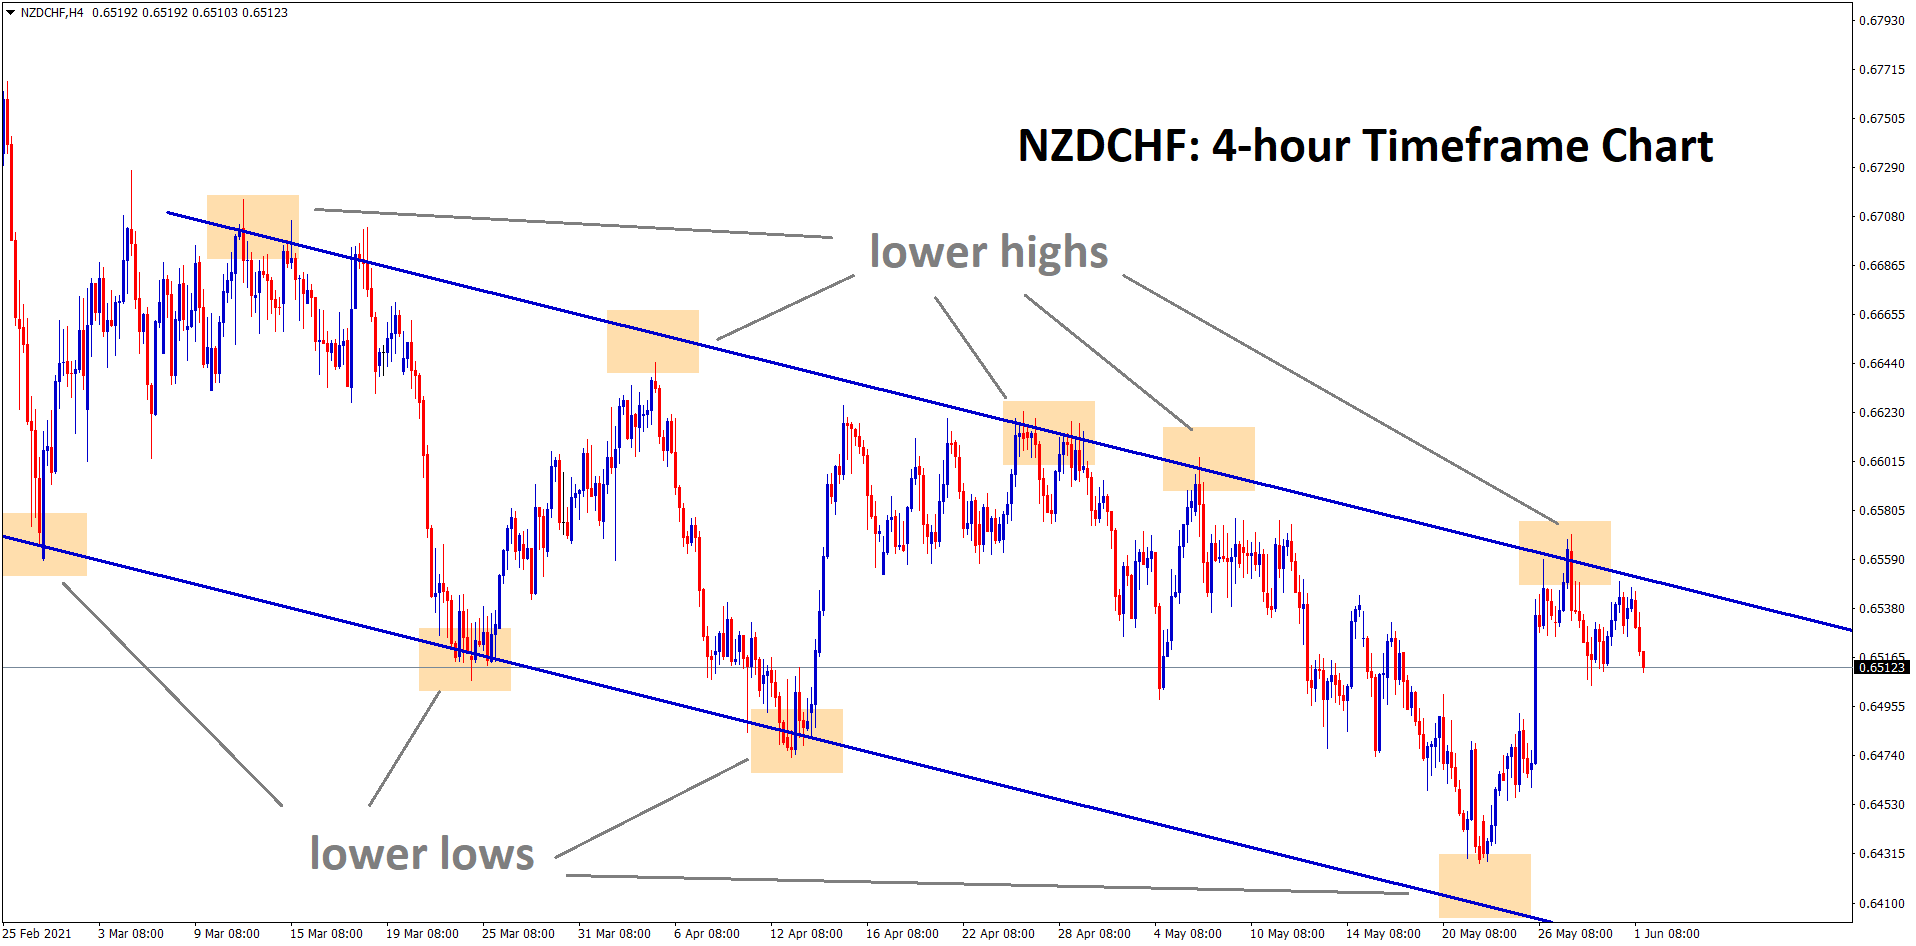 nzdchf falling from the lower high level of a descending channel 1